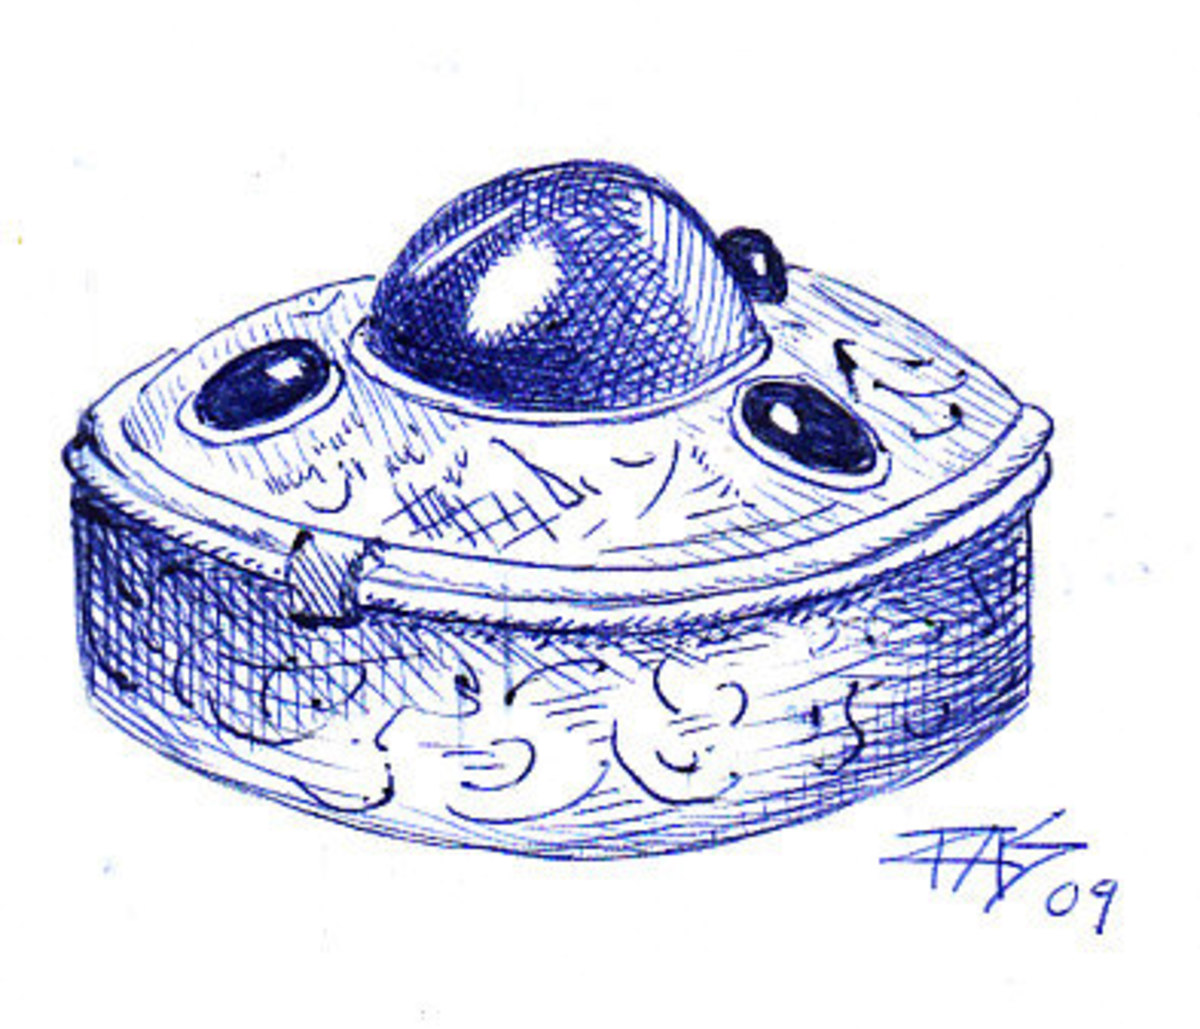 Pillbox Drawing in ballpoint pen on sketchbook paper by Robert A. Sloan